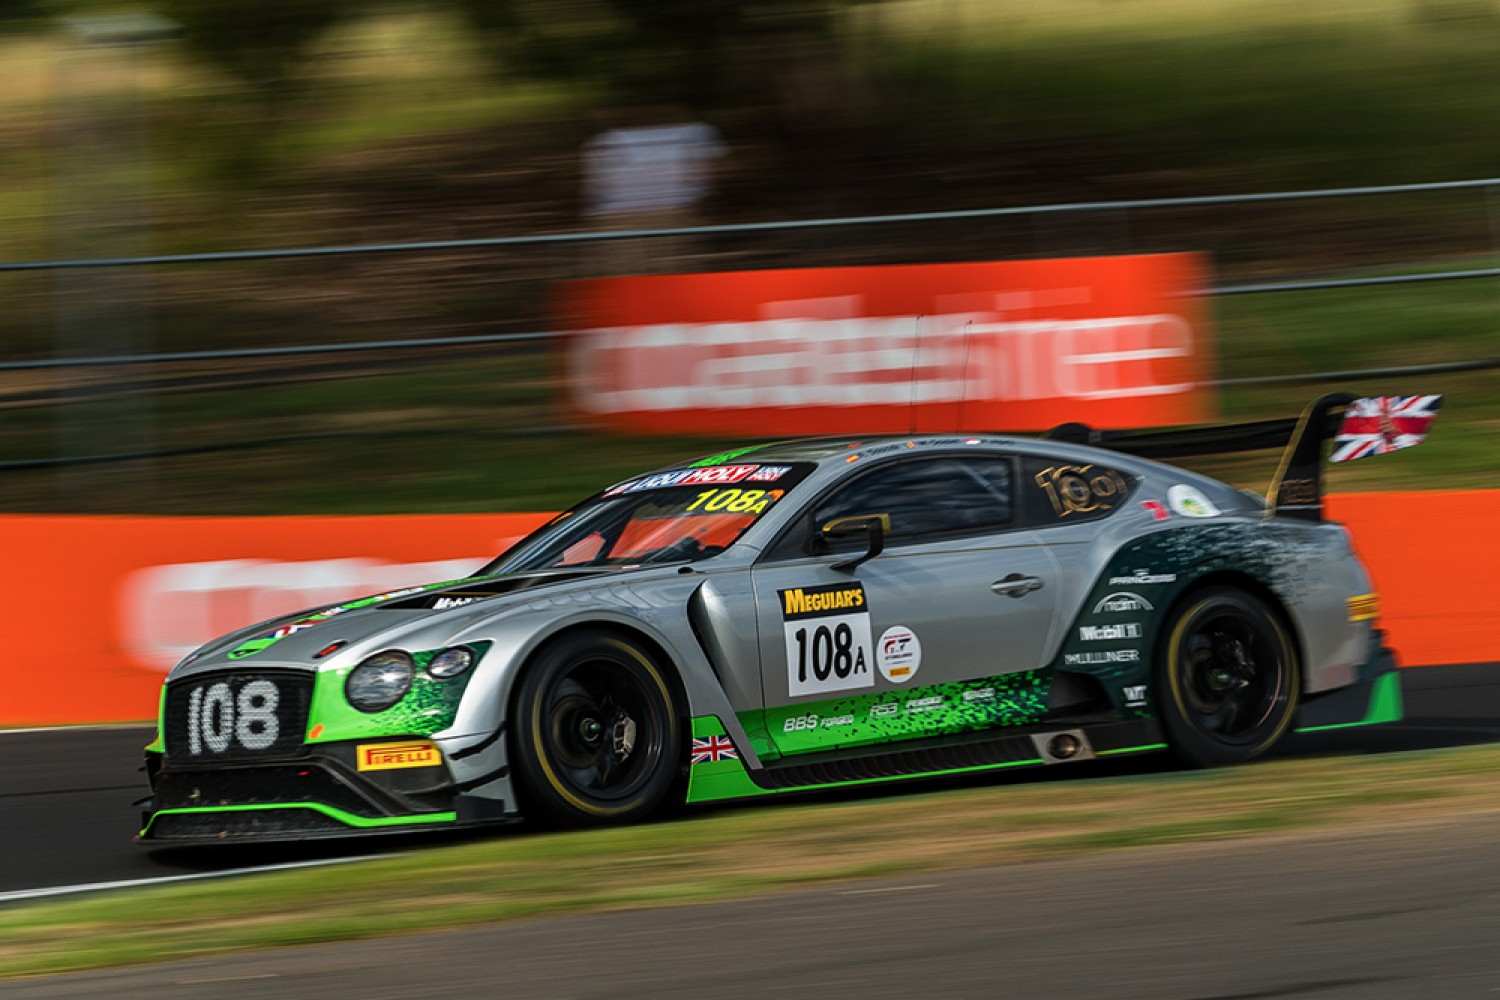 Bentley adds significant firepower with six new drivers for Total 24 Hours of Spa assault